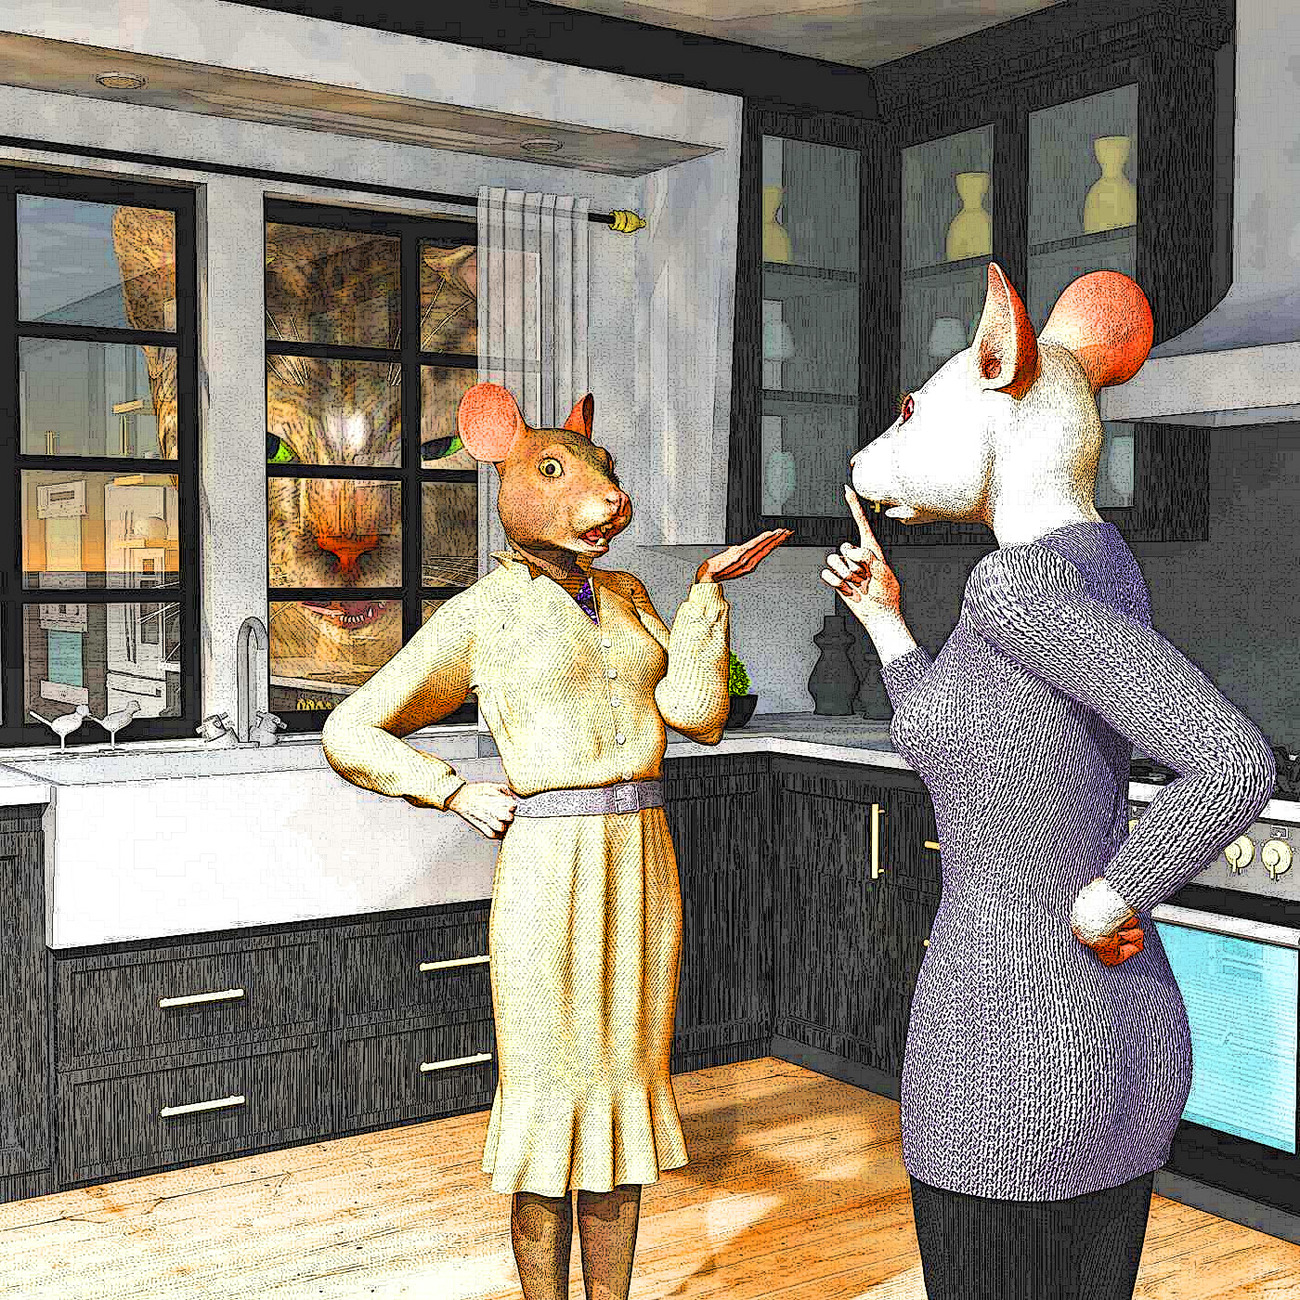 Mice in the Kitchen by rps53